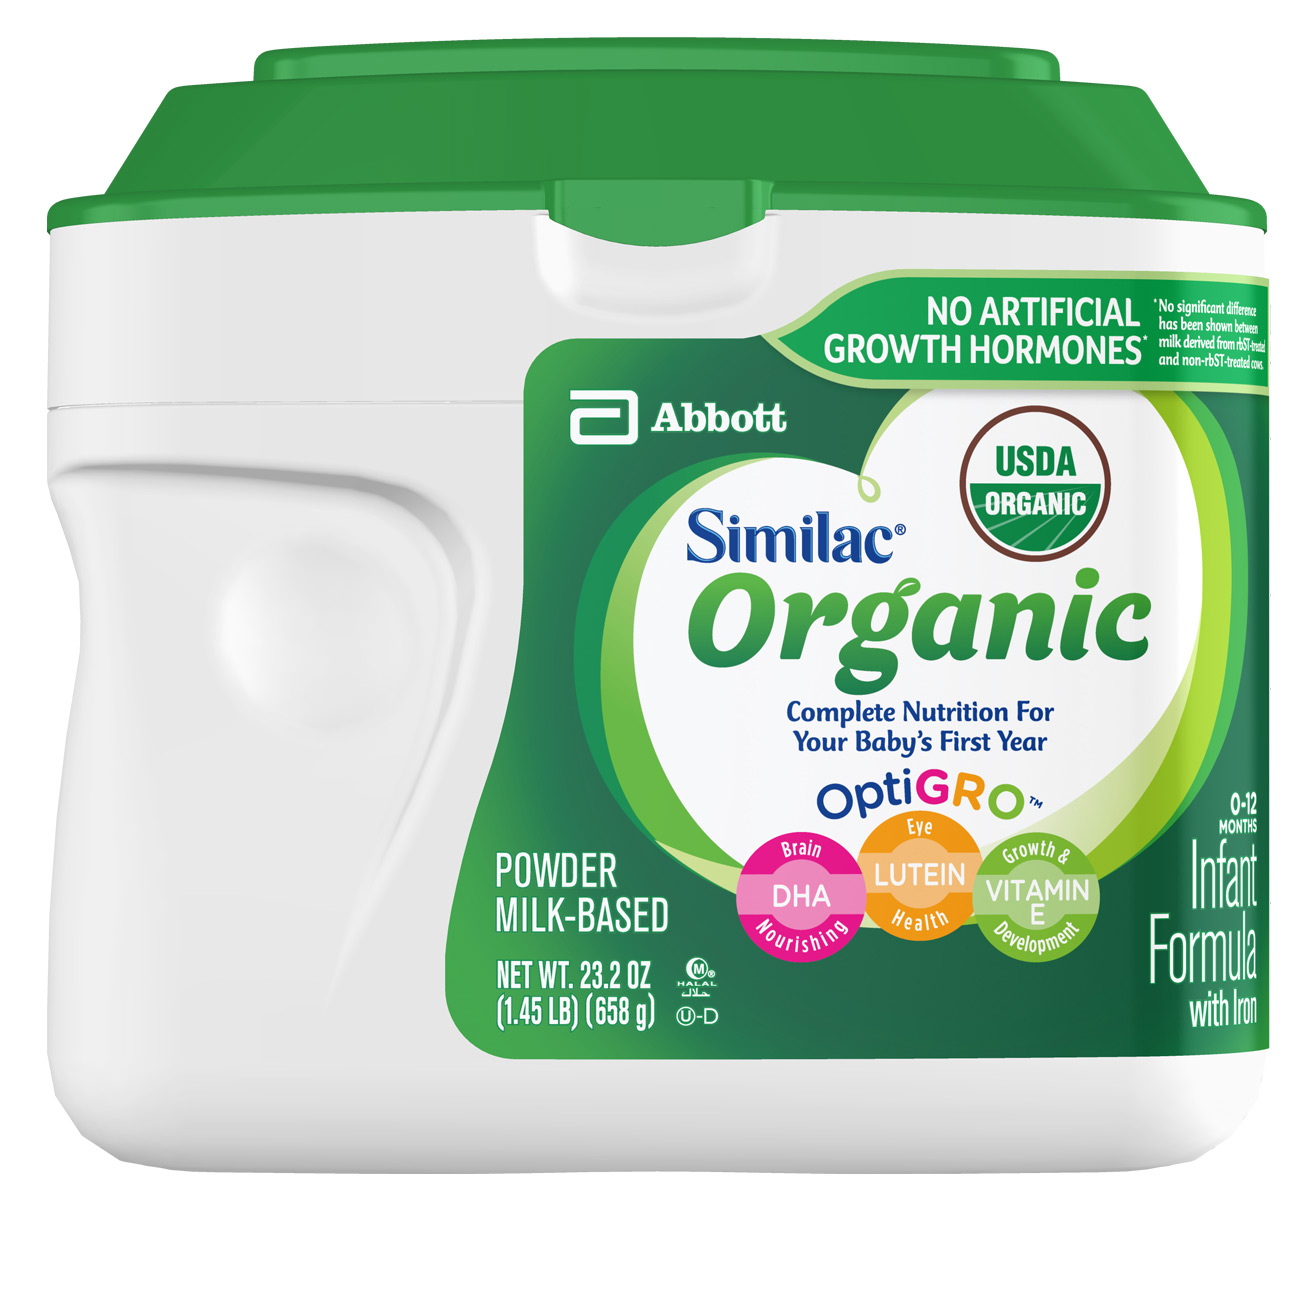 (Buy 2, Save $5) Similac Organic NON-GMO Infant Formula with Iron, Powder, 1.45 lb